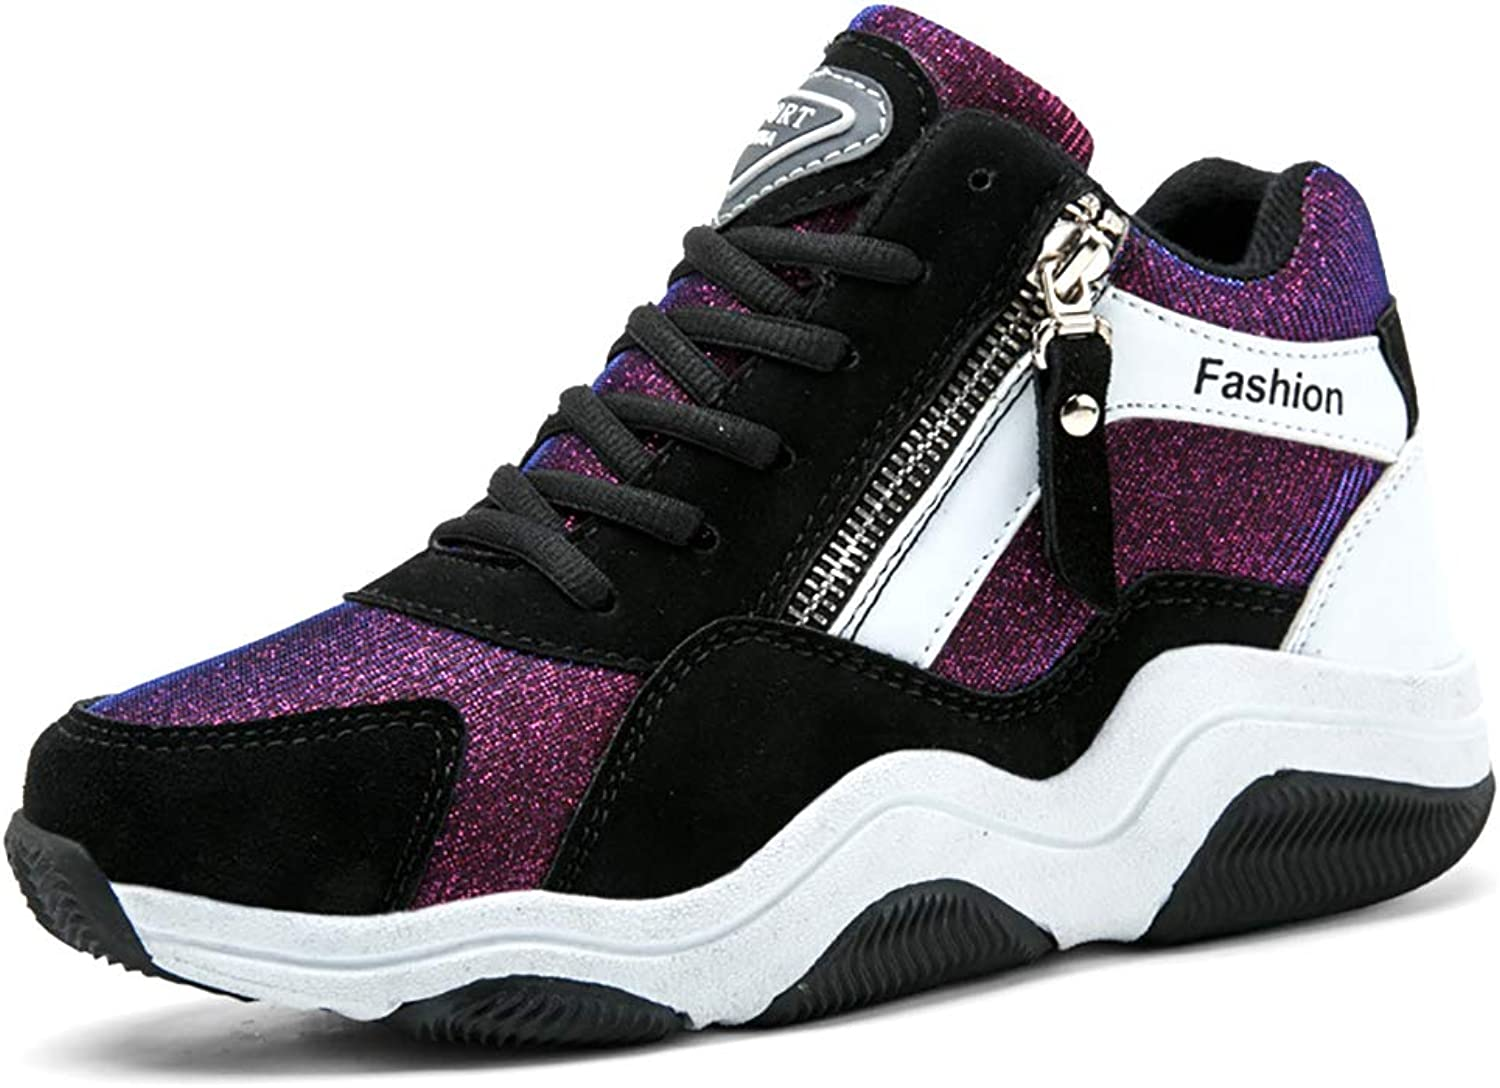 Women's Comfort shoes,PU(Polyurethane) Fall & Winter Sneakers 2 colors Available, 5 Sizes,Purple,39